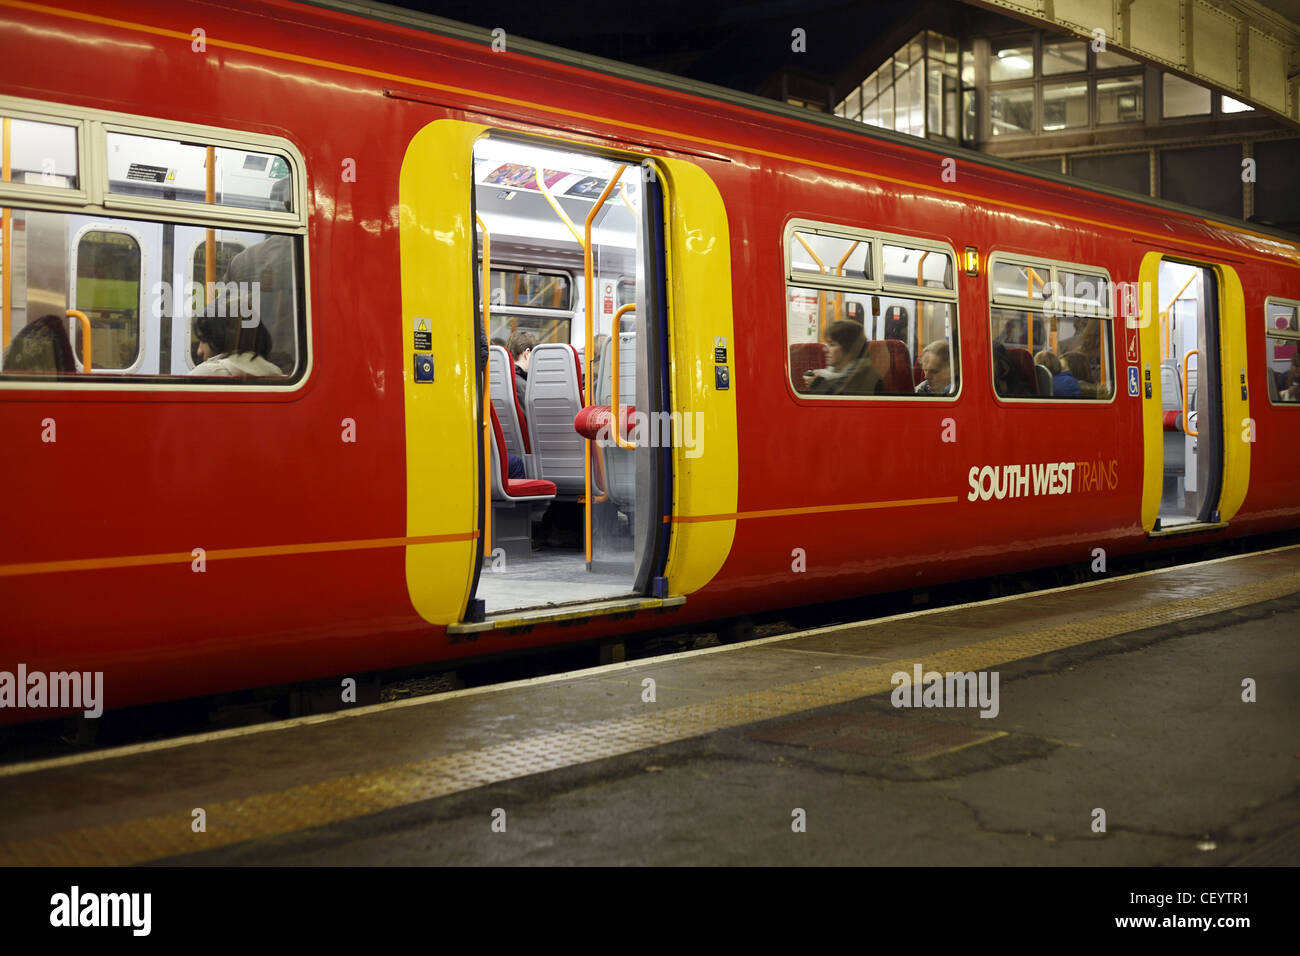 A South West train waiting on a platform in Wimbledon station. - Stock Image